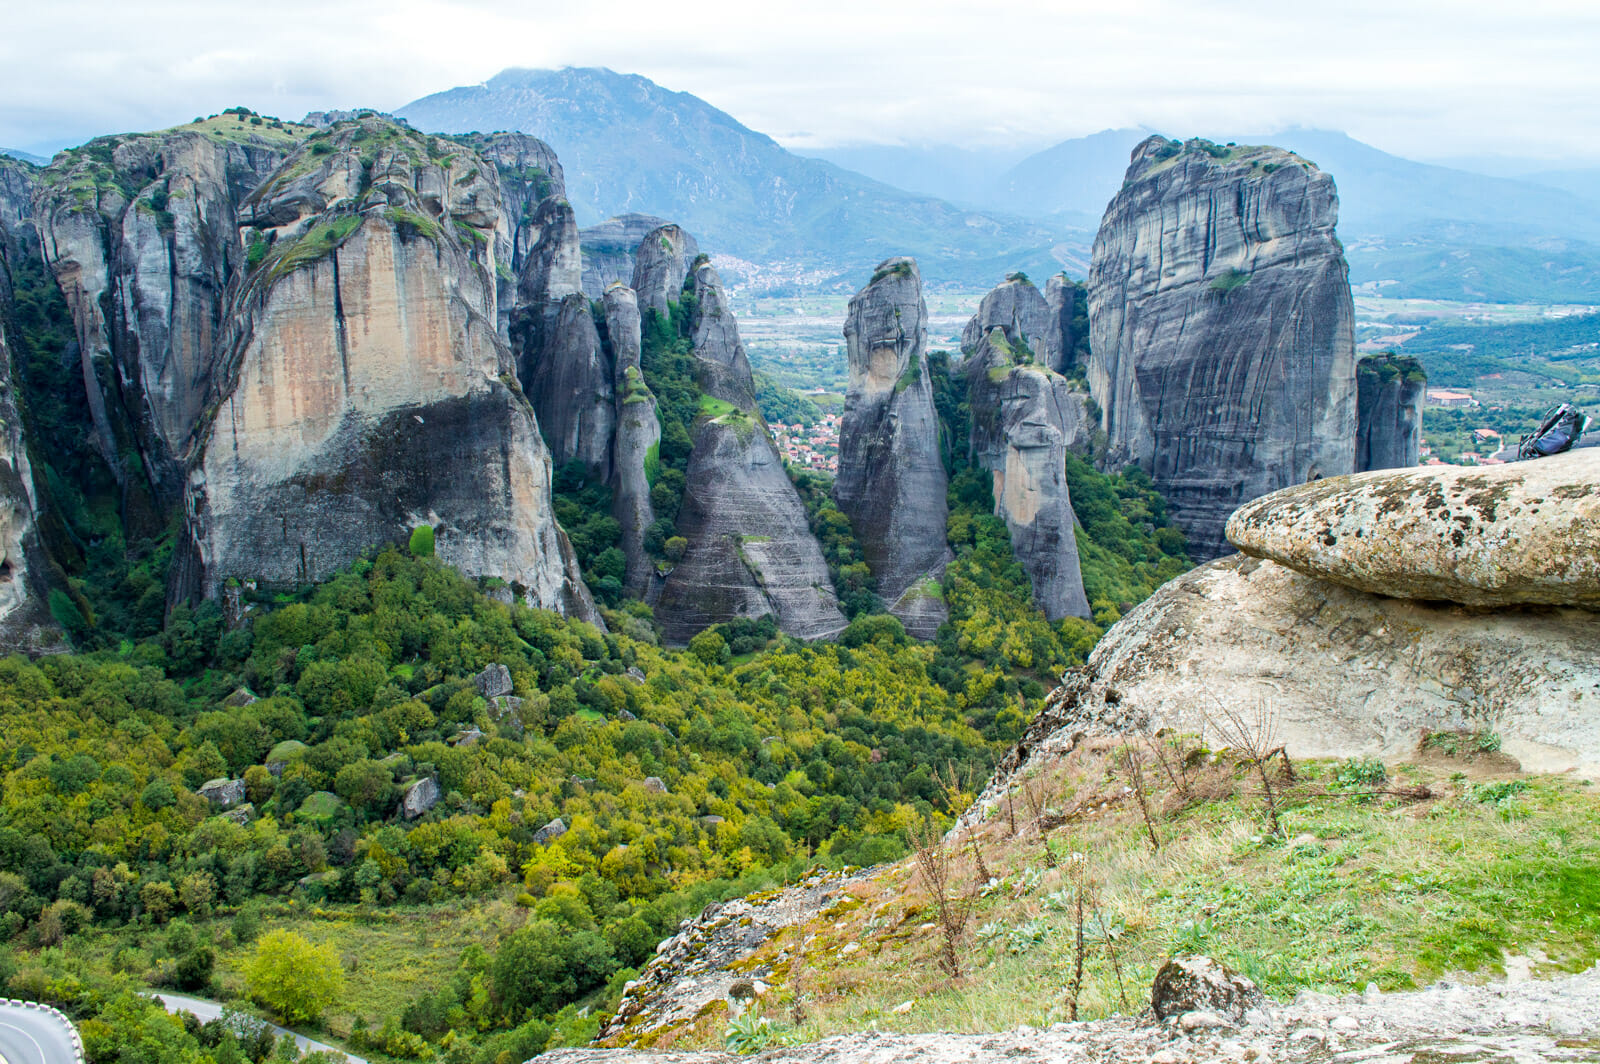 The landscapes of Meteora